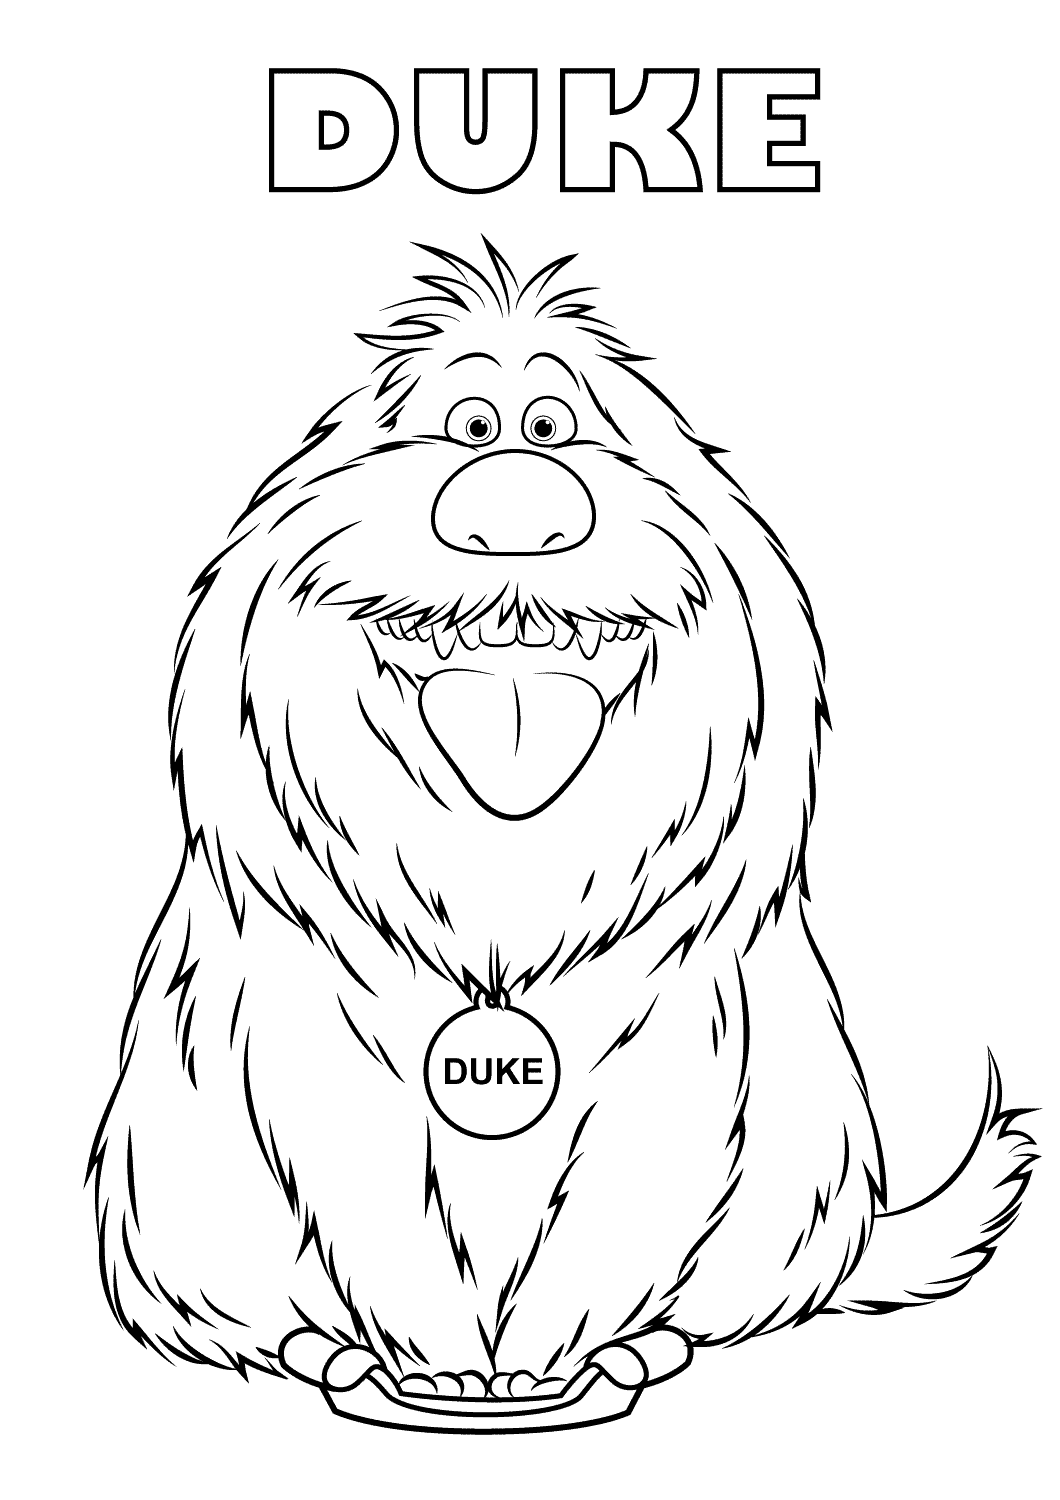 The secret life of pets free to color for kids - The ...